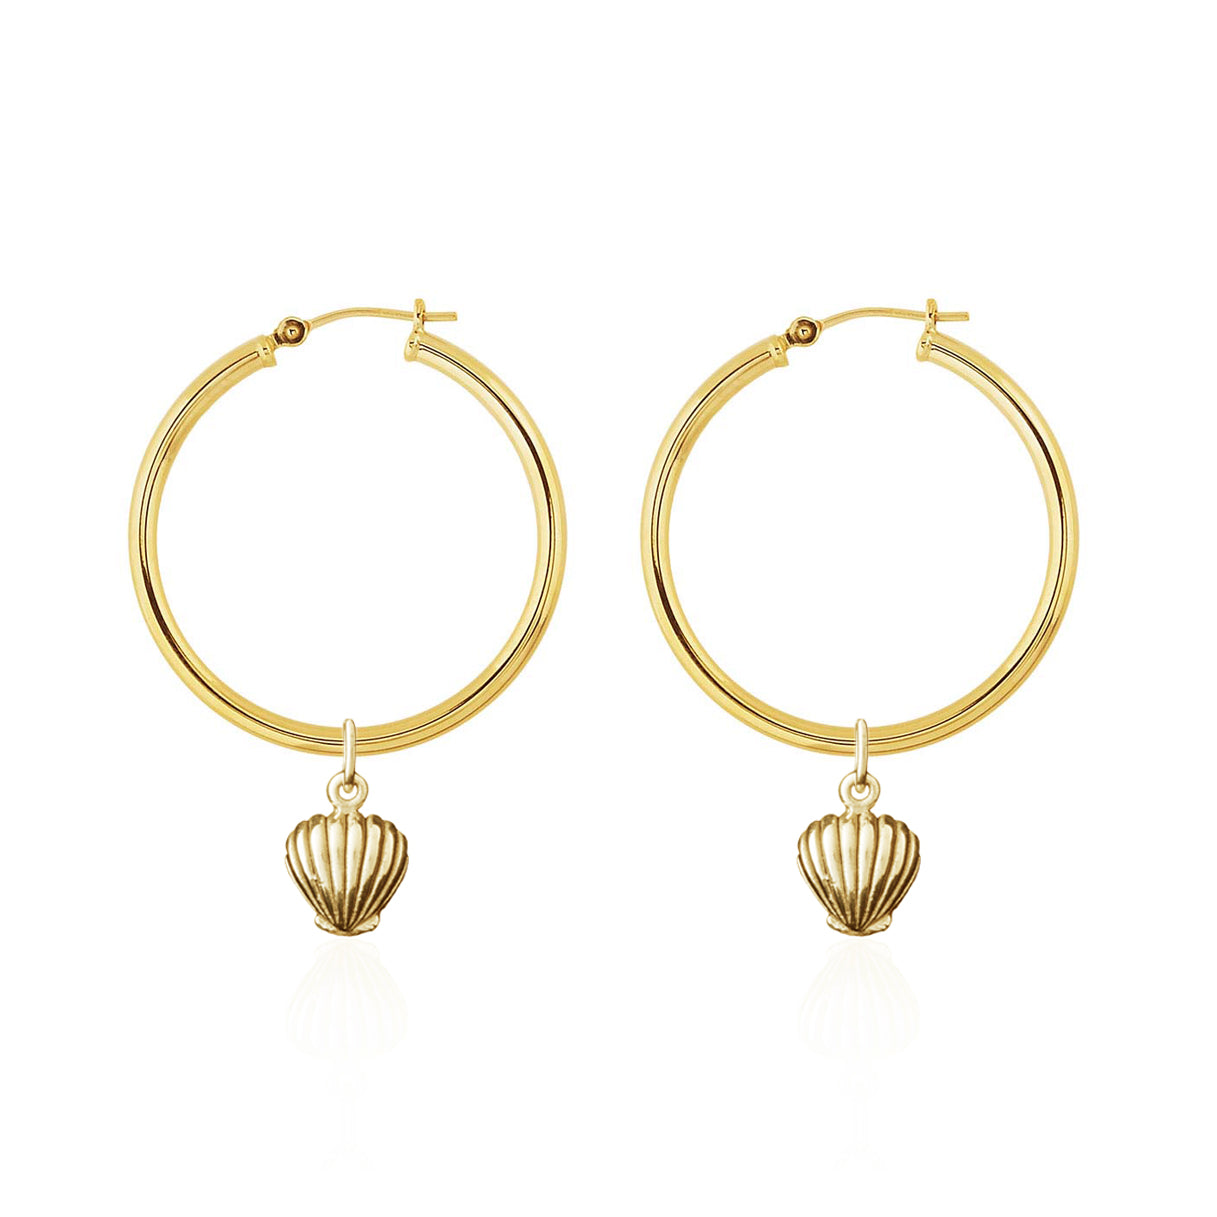 La Luna Rose Gold Tube Hoop Earrings with Beach Shells Charms